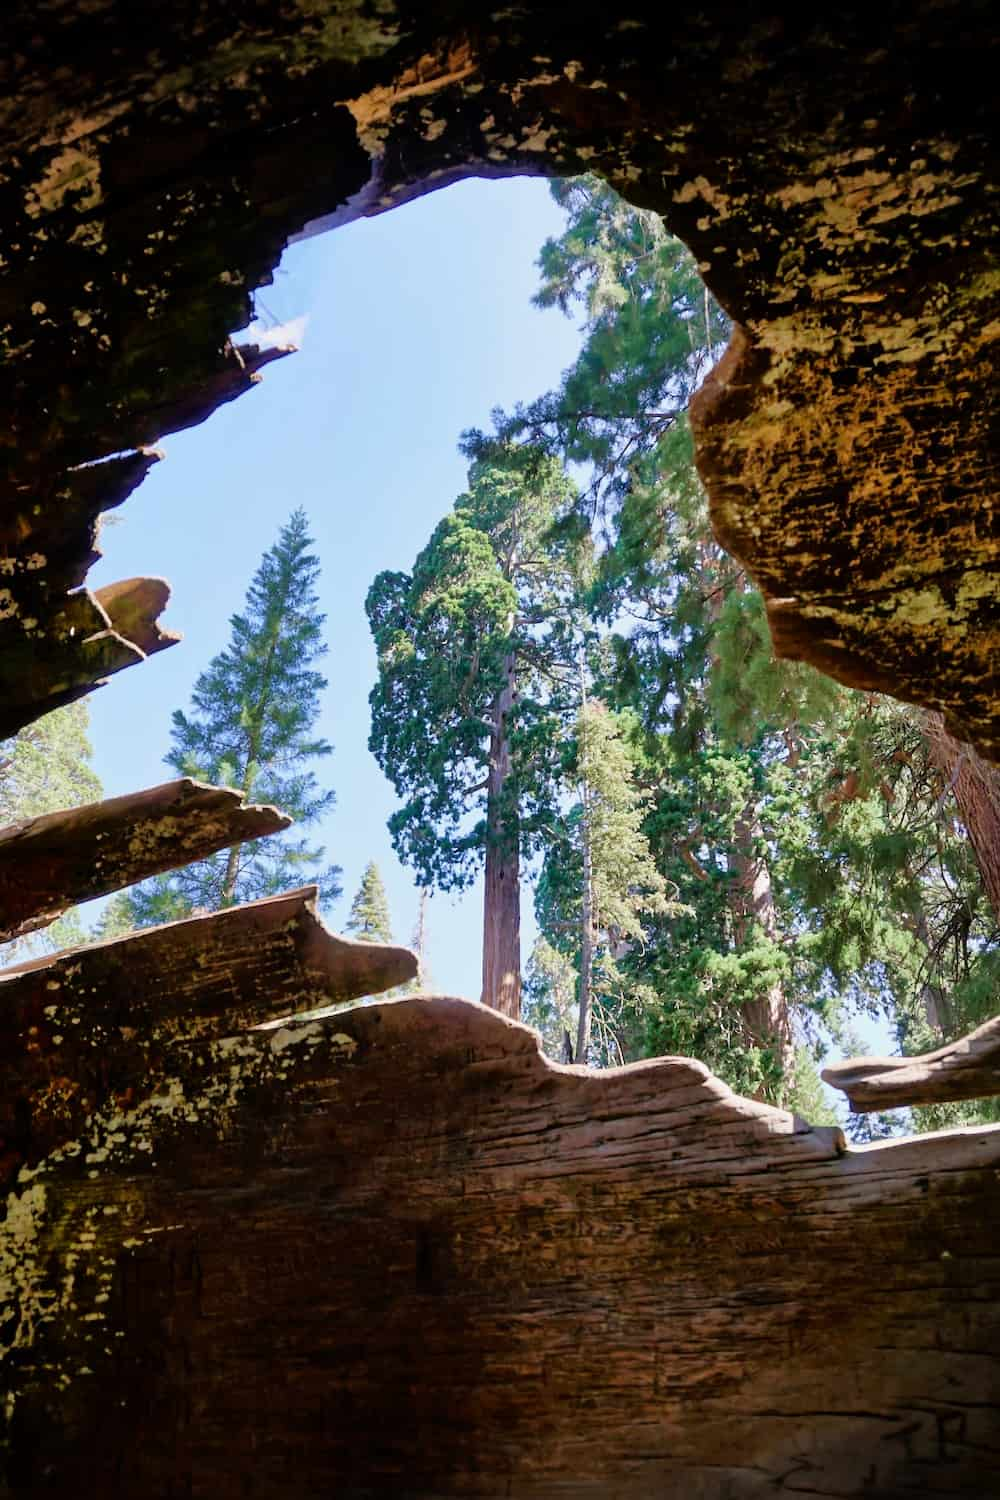 One Day in Sequoia National Park - Tree Grove